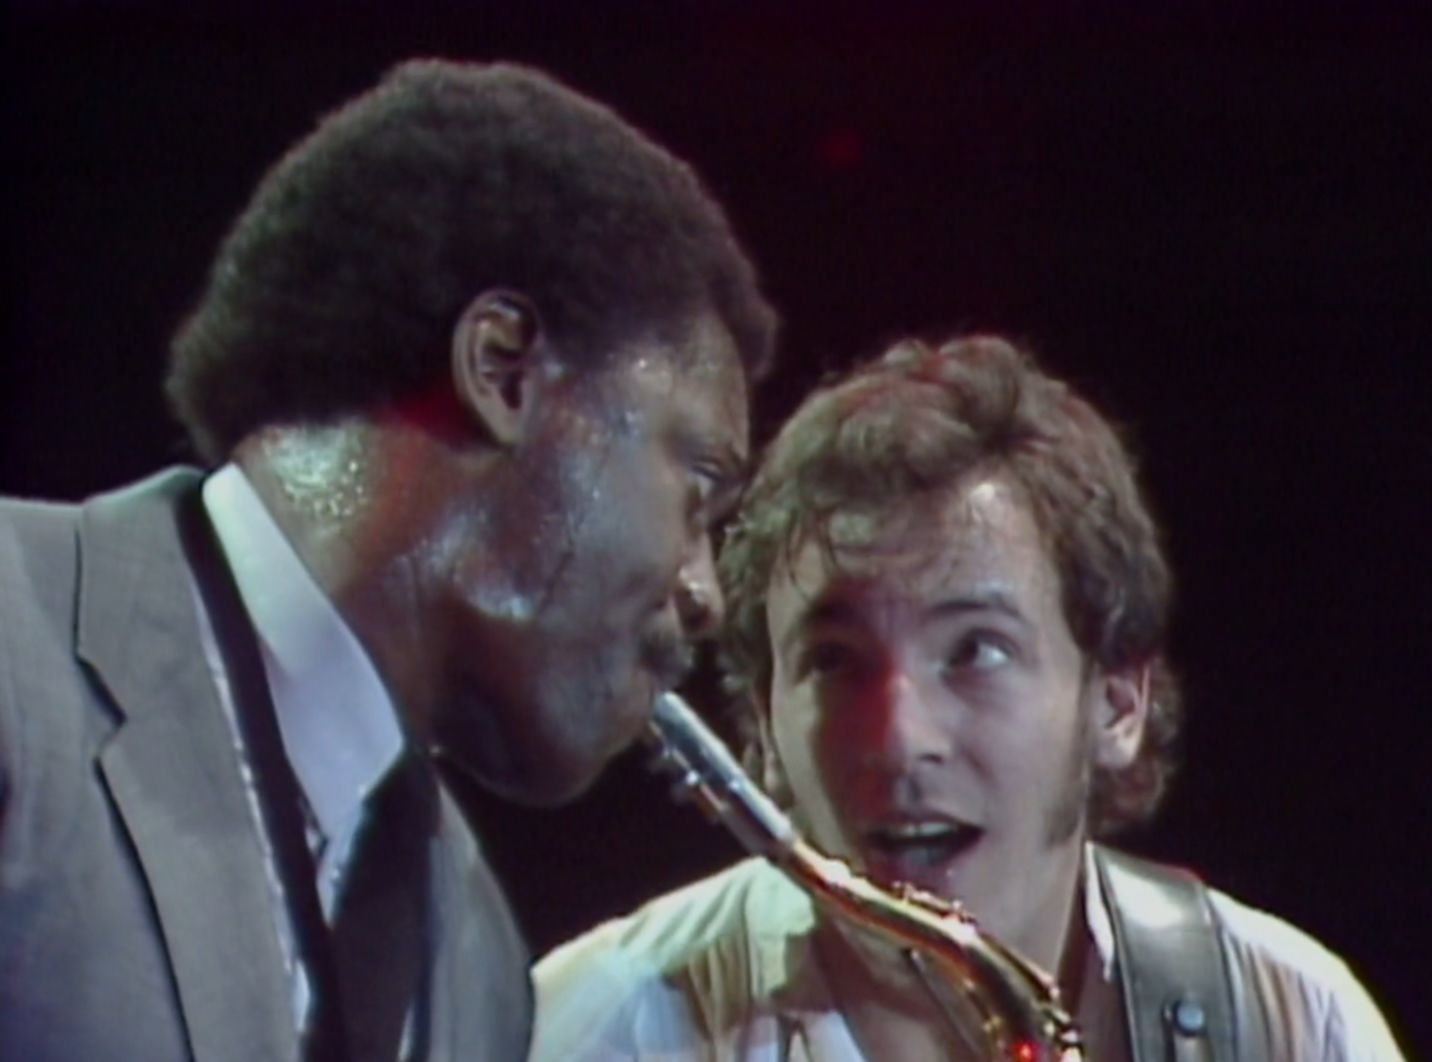 bruce springsteen live 1980 video still